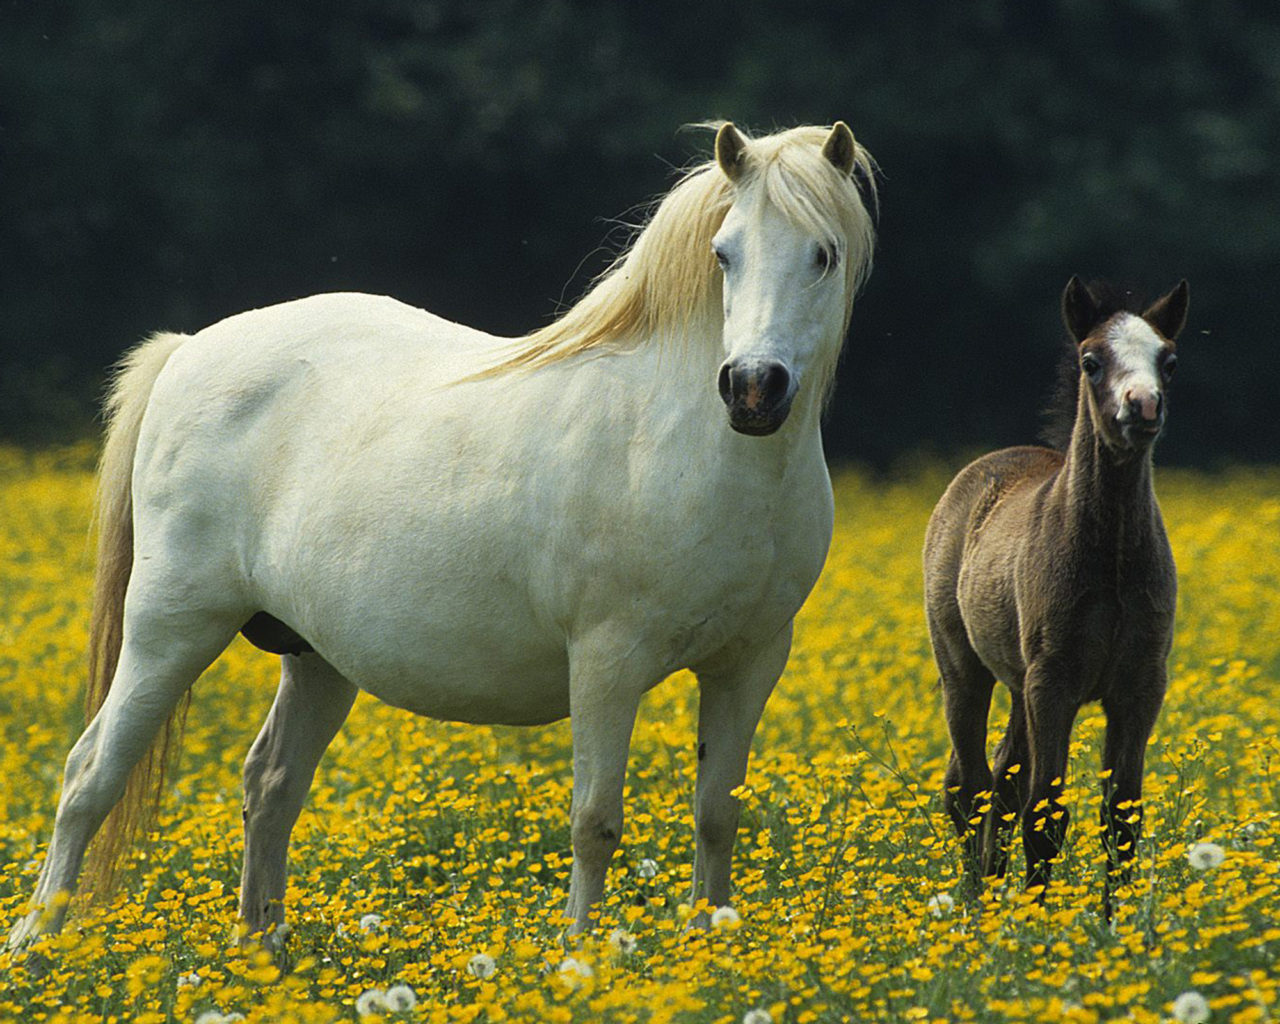 Cute Kitten Christmas Wallpaper White Horse Small Black Colt Meadow With Yellow Flowers